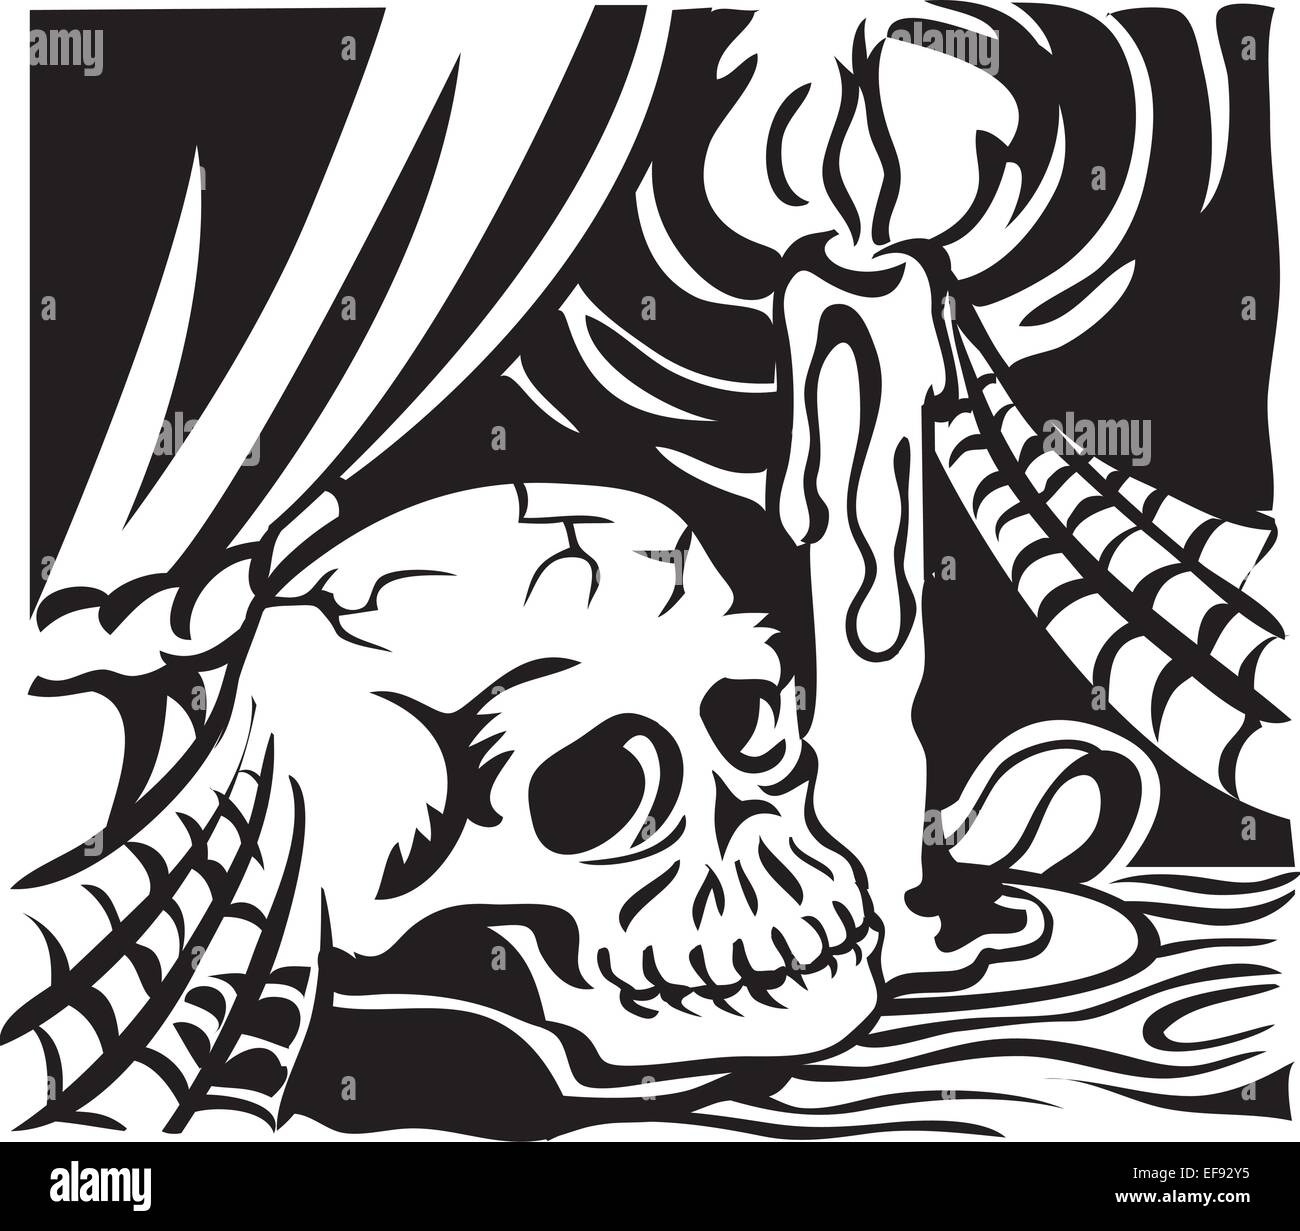 A skull sitting under a candle - Stock Vector